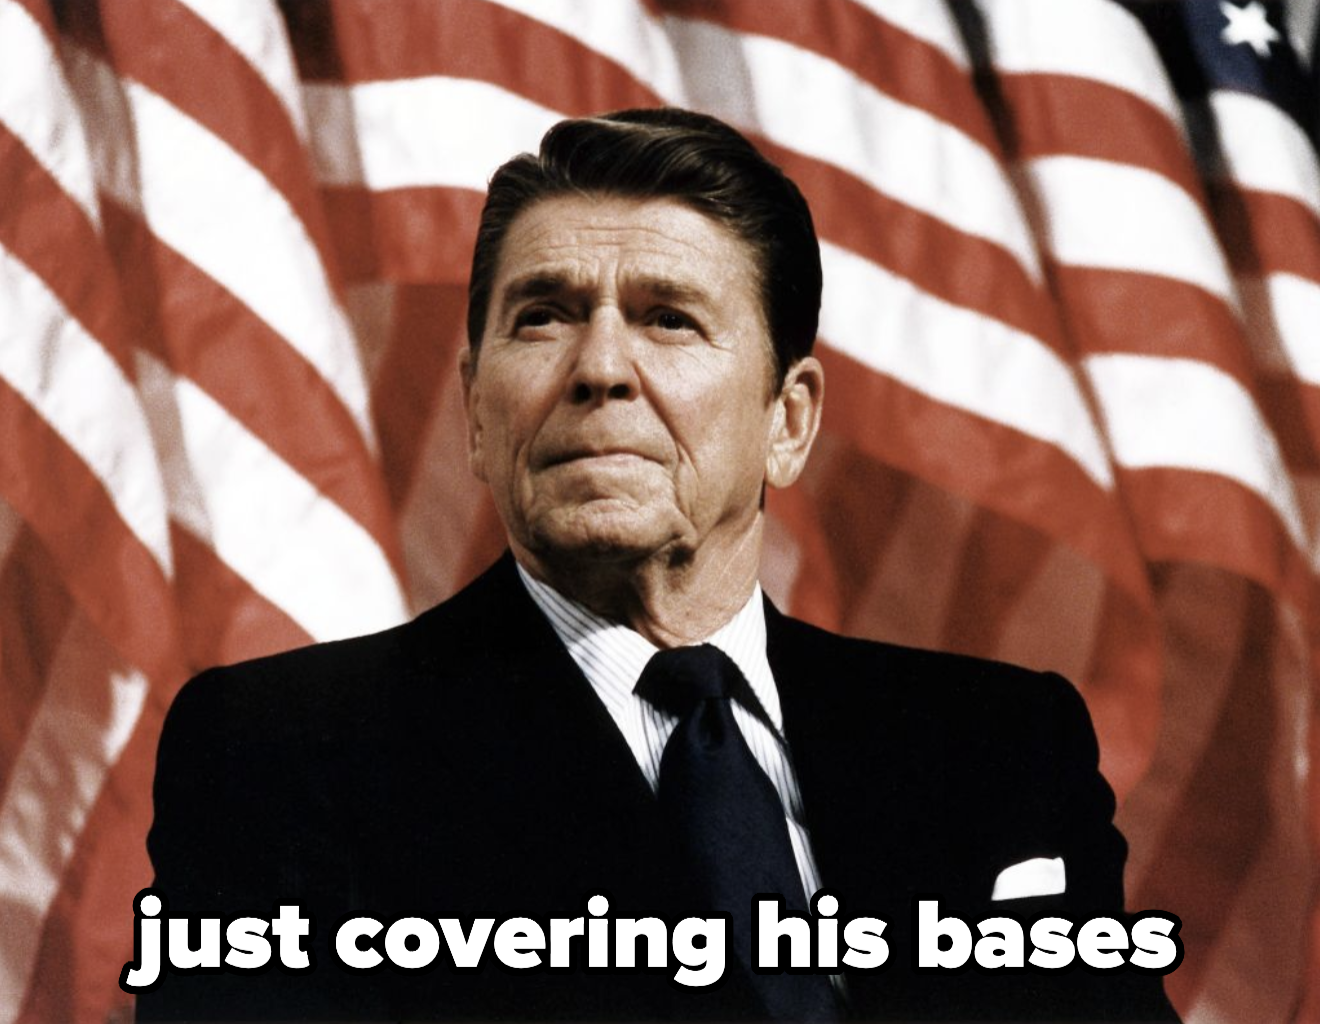 Ronald Reagan, who was just covering his bases